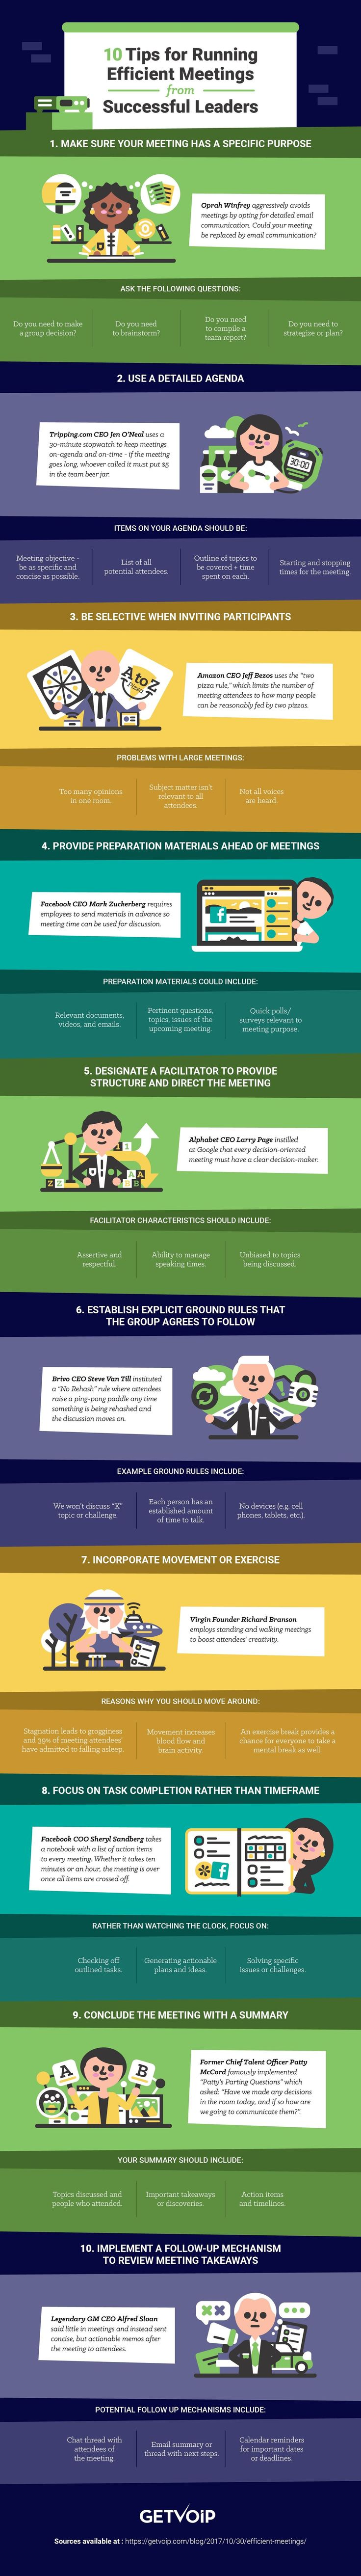 10 Tips for Efficient Meetings from Successful Leaders [Infographic]